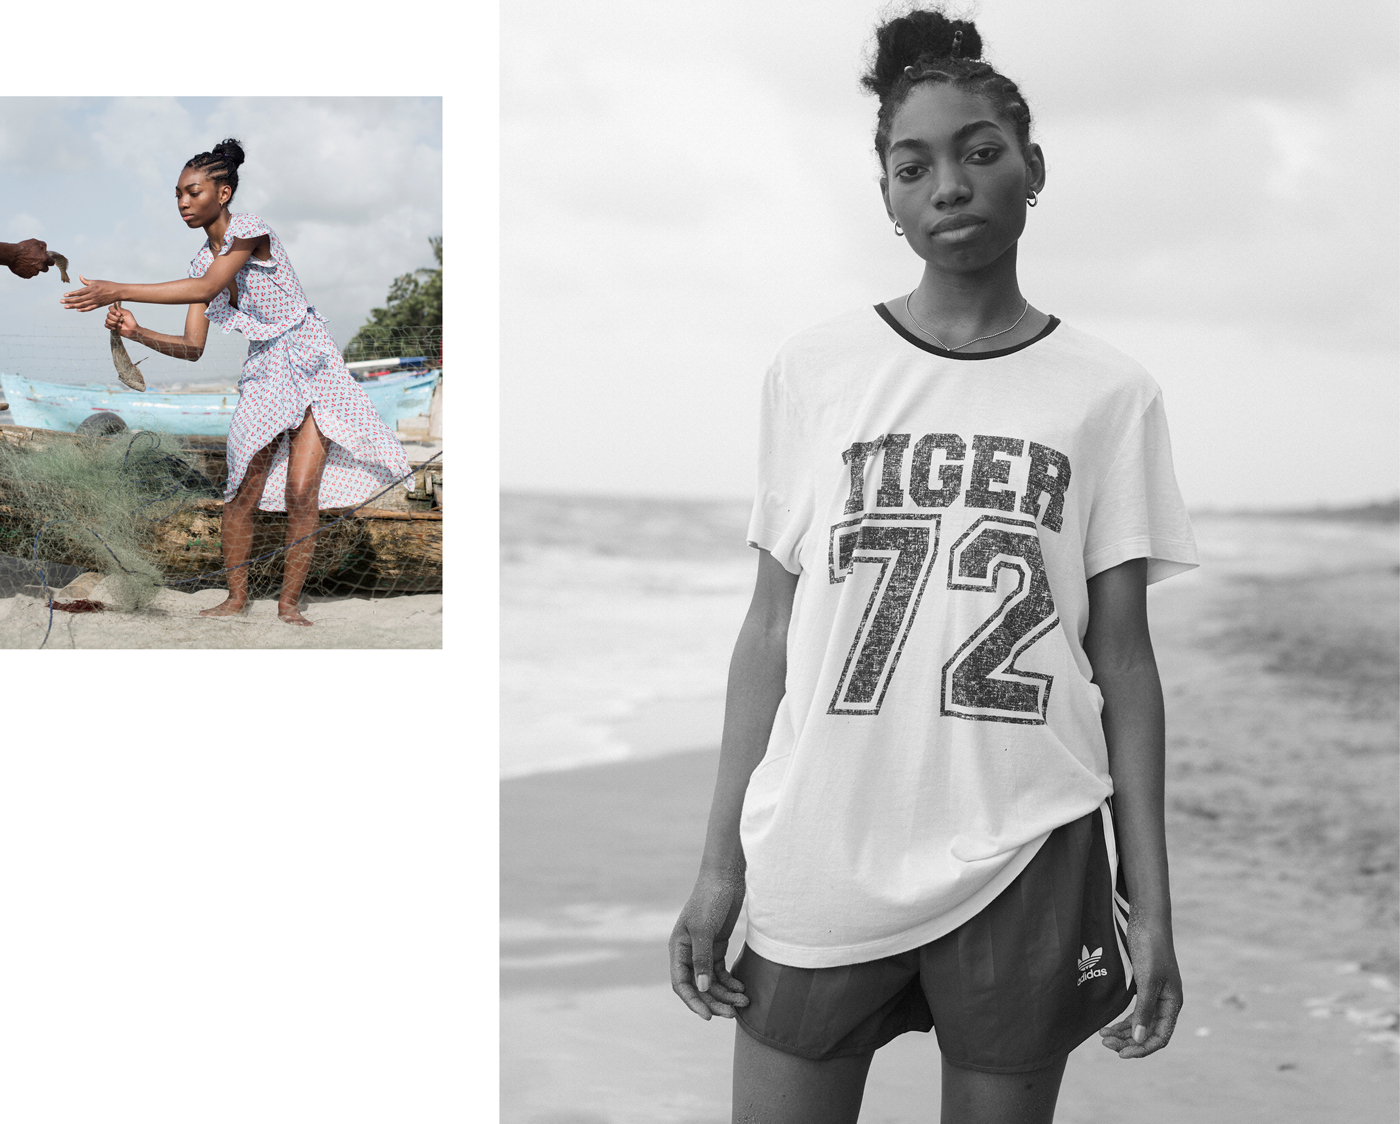 Left: Dress by Altuzarra. Earrings by Eddie Borgo.Right: T-shirt by Roberto Cavalli. Shorts by Adidas.